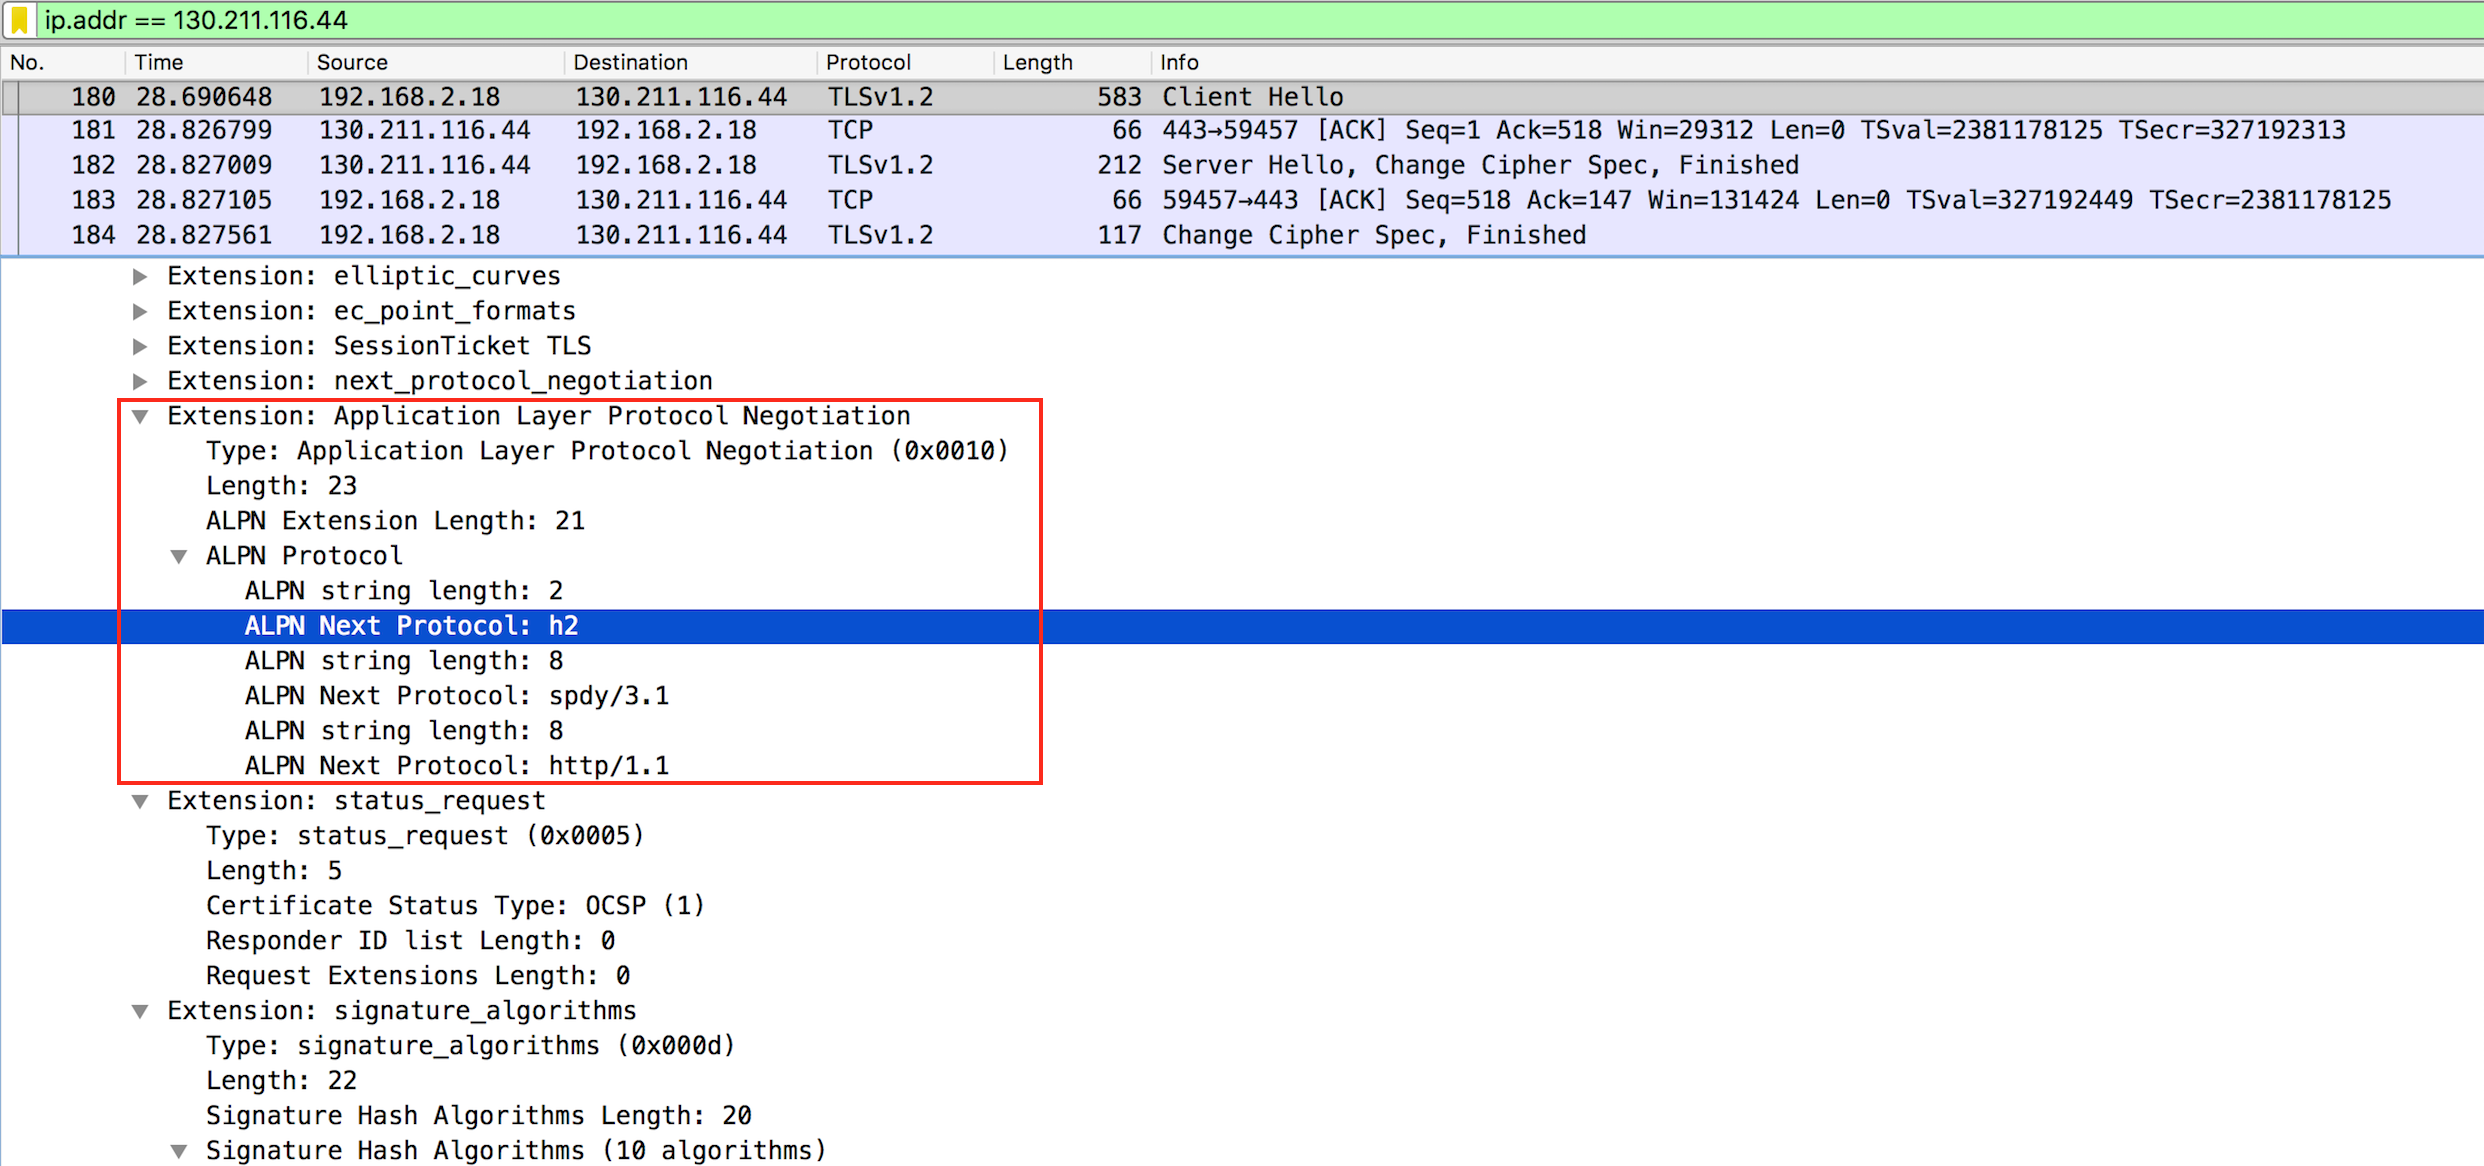 Detail on Client Hello message and which protocols can be used and in which order (h2, spdy, http/1.1)